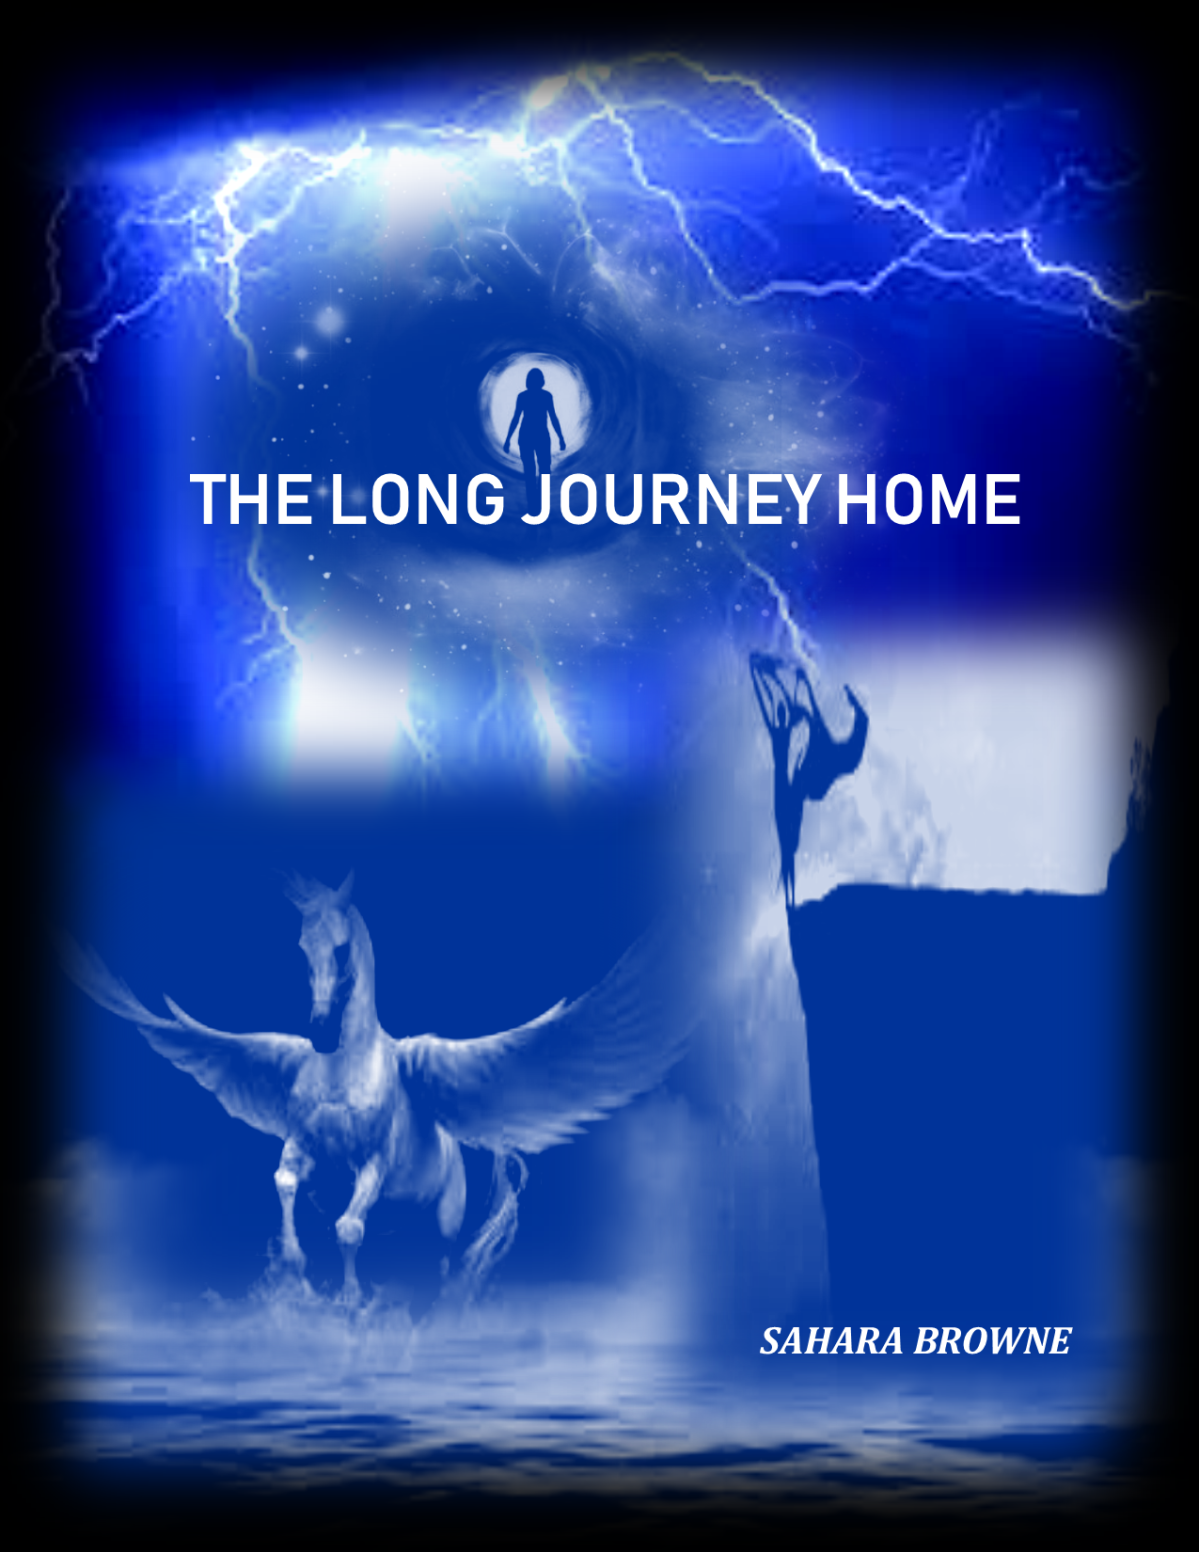 The long journeyhome